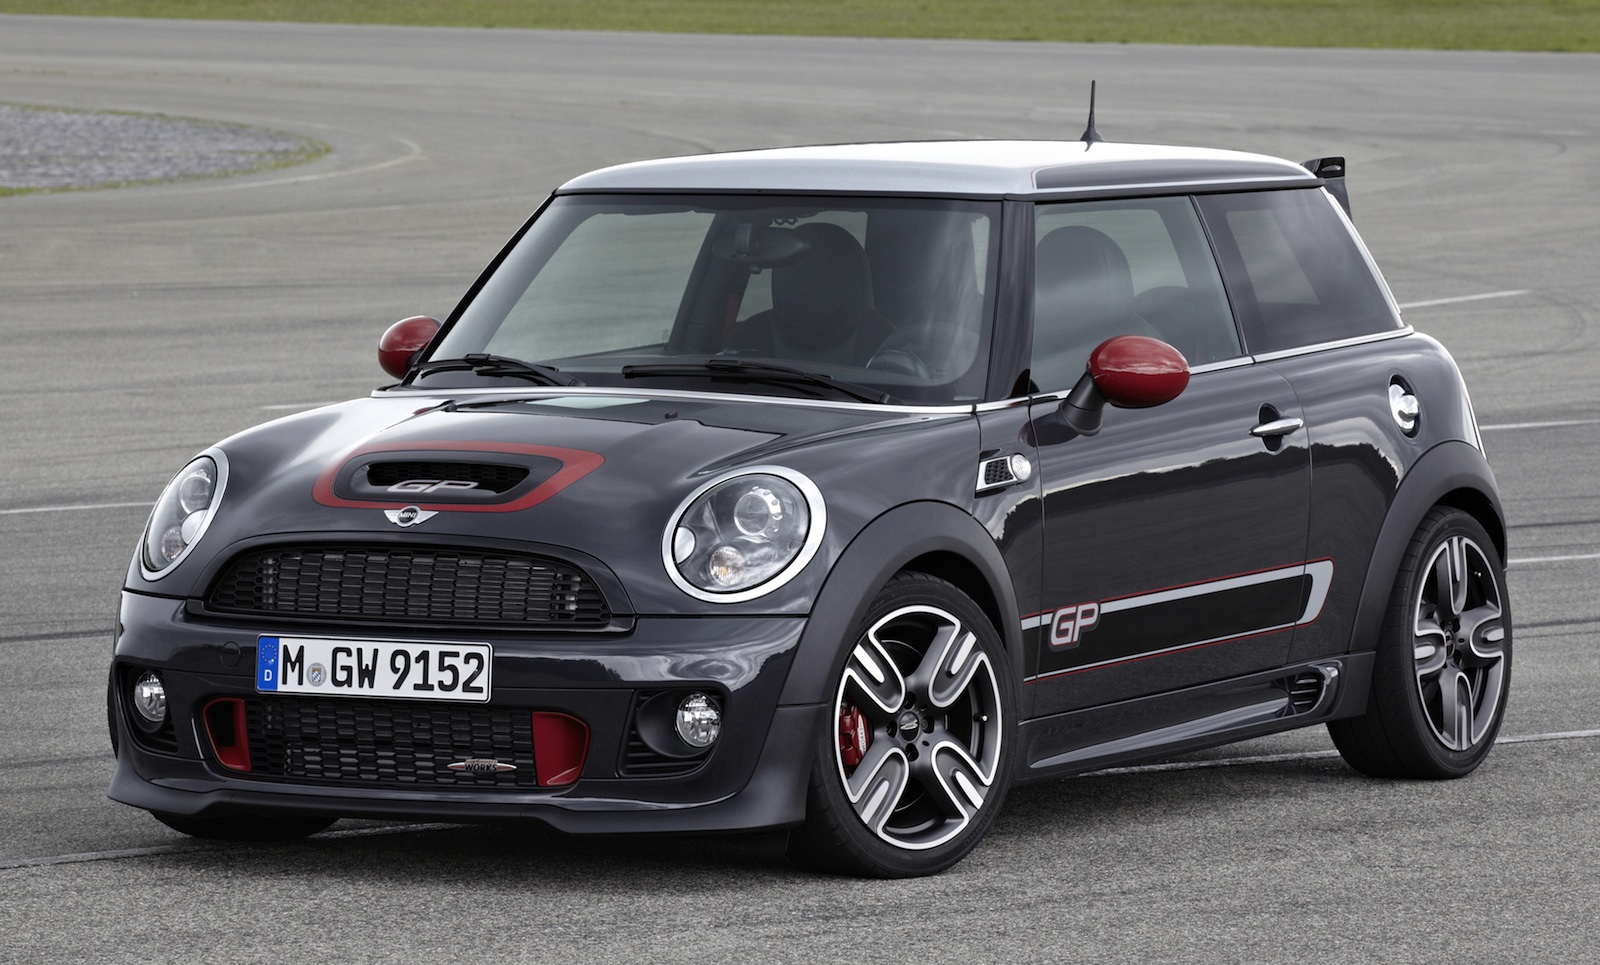 mini john cooper works gp here next year for circa 60 000 photos 1 of 12. Black Bedroom Furniture Sets. Home Design Ideas